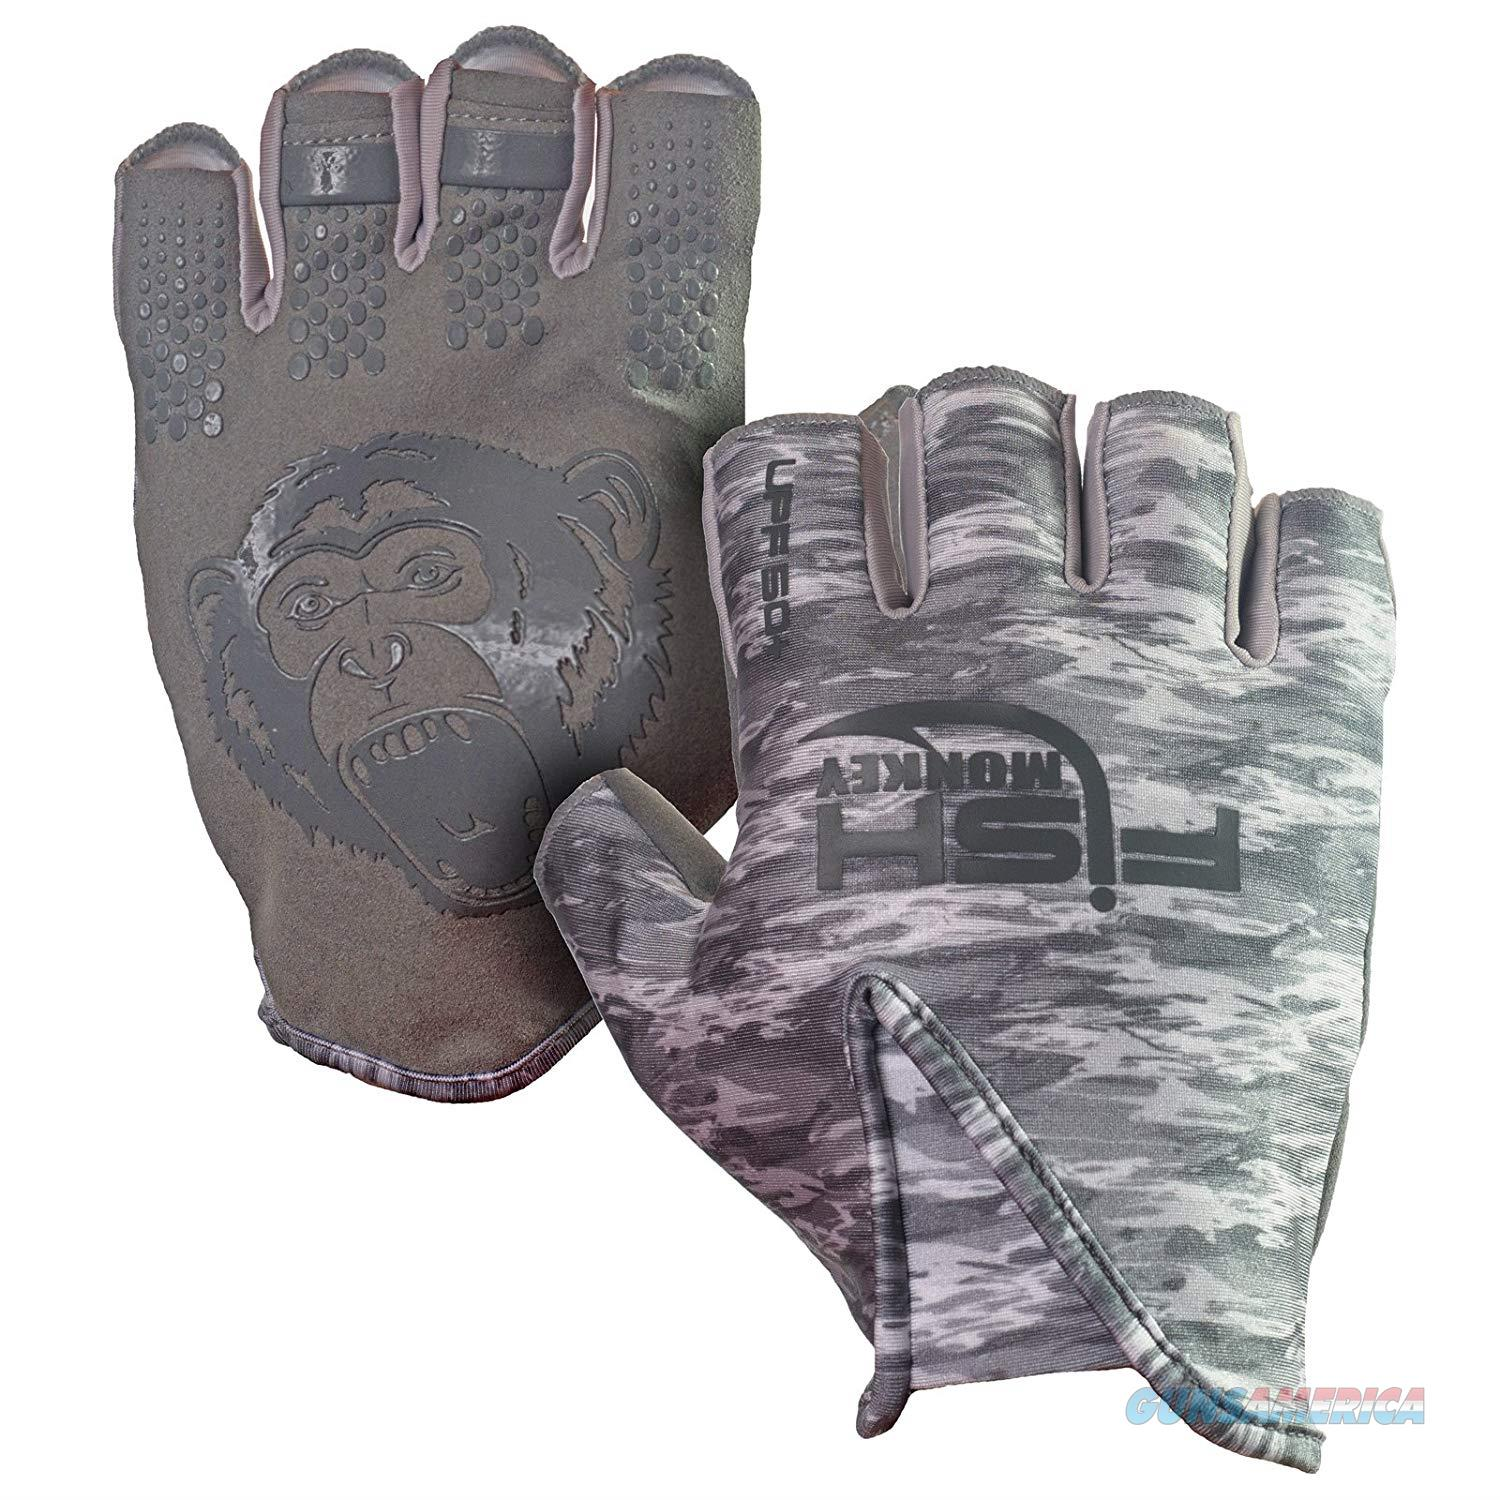 Fish Monkey Stubby Guide Glove Grey SM  Non-Guns > Hunting Clothing and Equipment > Clothing > Gloves